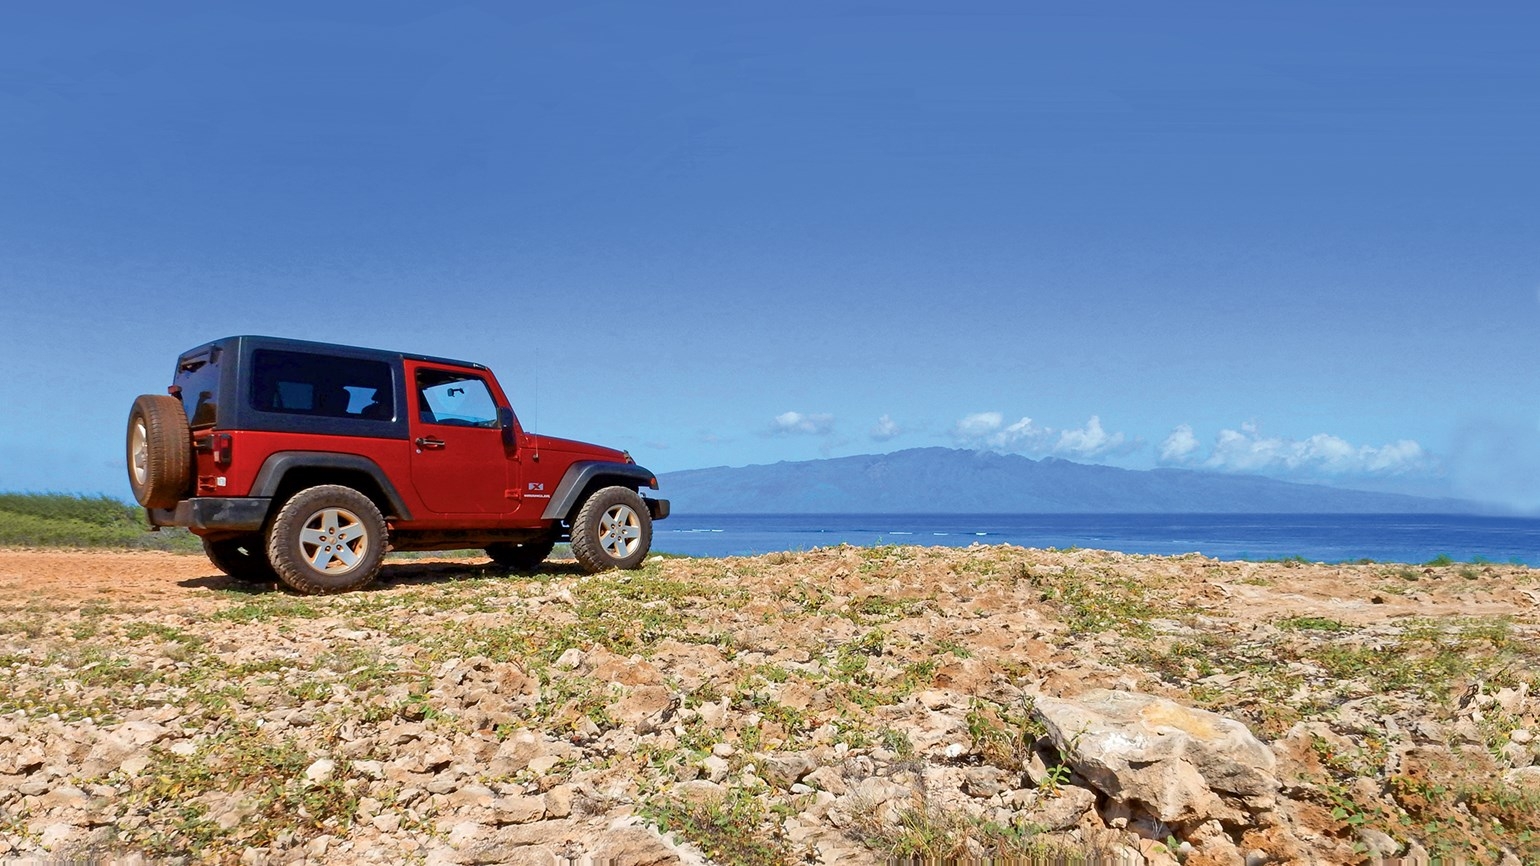 On Lanai, rugged roads and refurb